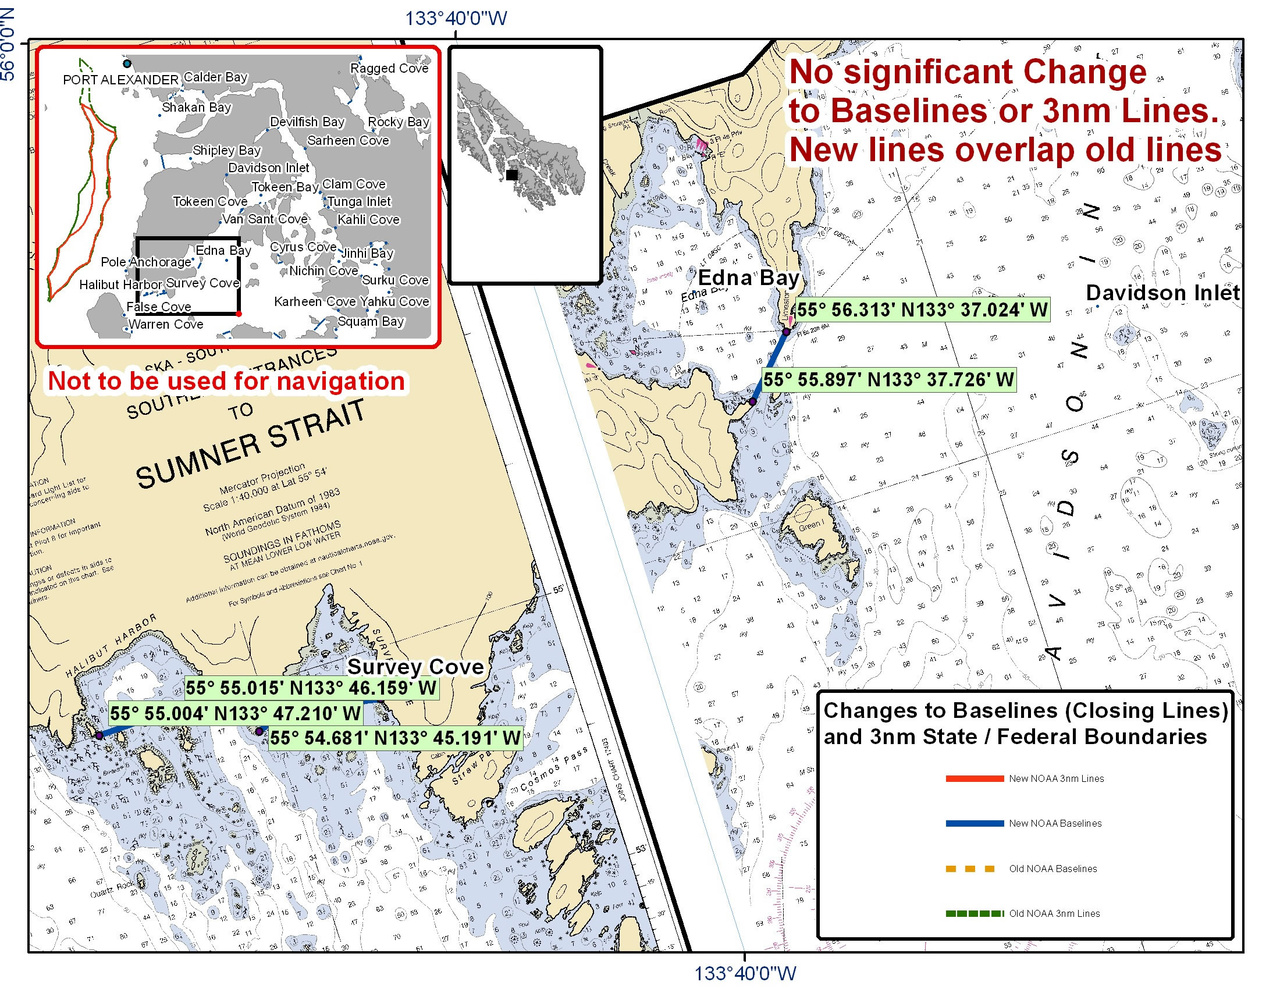 Chart for Survey Cove and the Surrounding Area